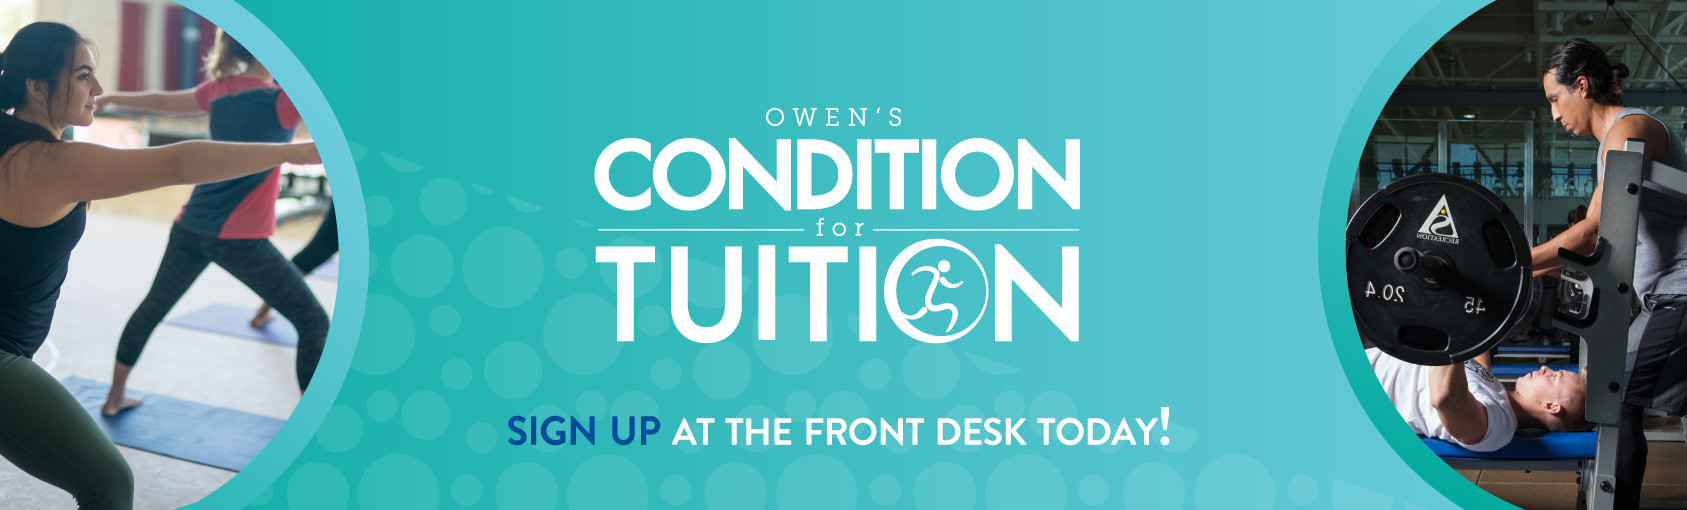 Sign-up for the Owen's Challenge Now Banner